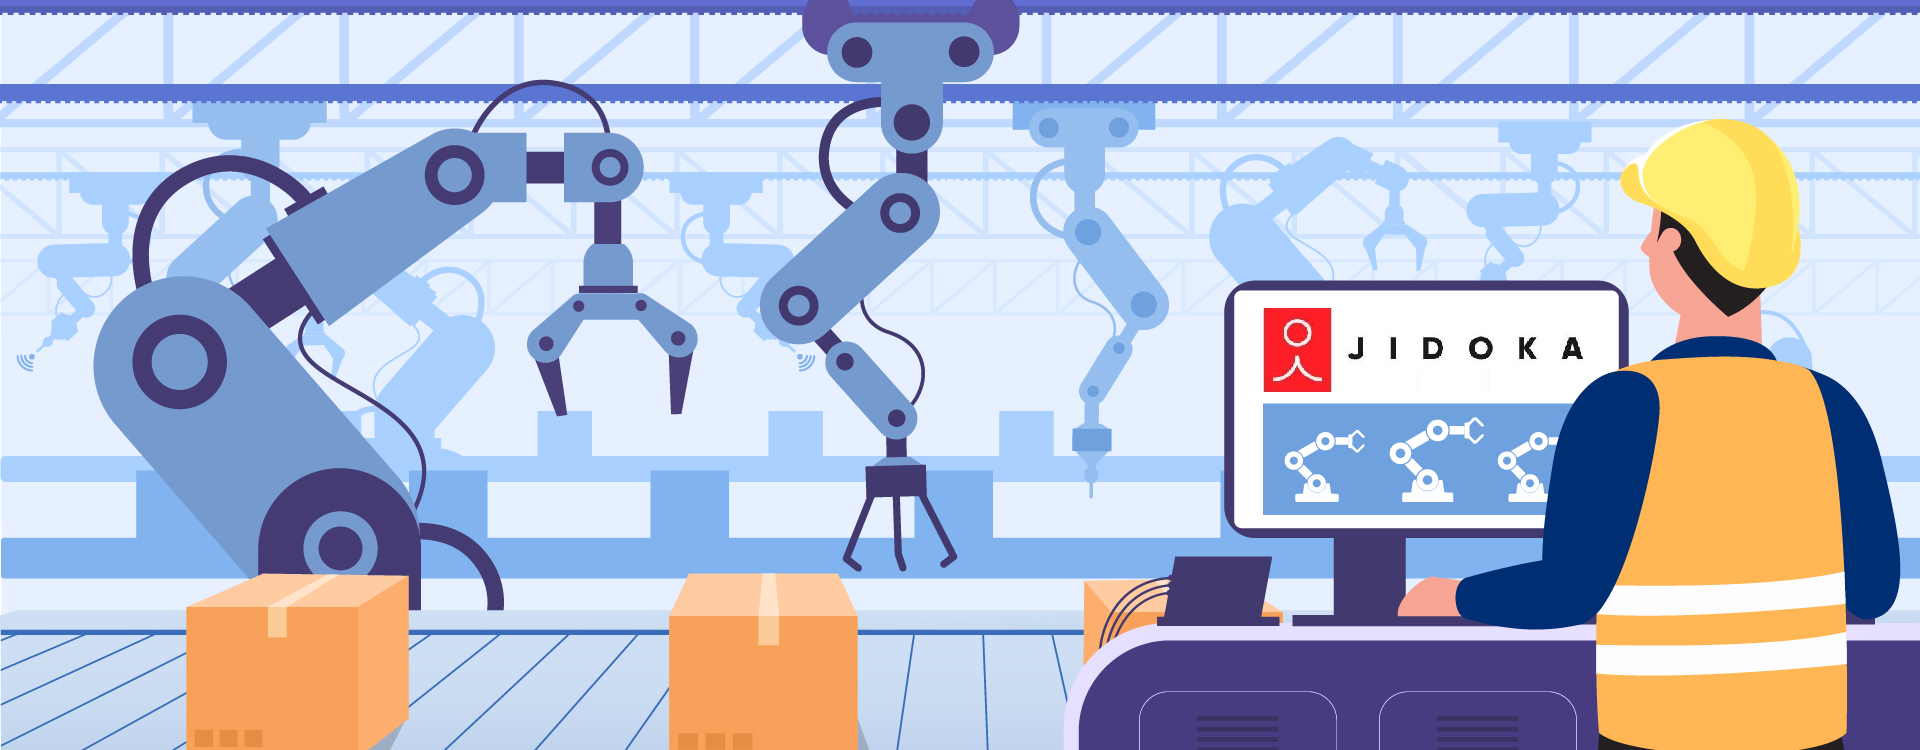 Jidoka offers automated quality control solutions in the manufacturing vertical by leveraging AI,ML and deep learning.